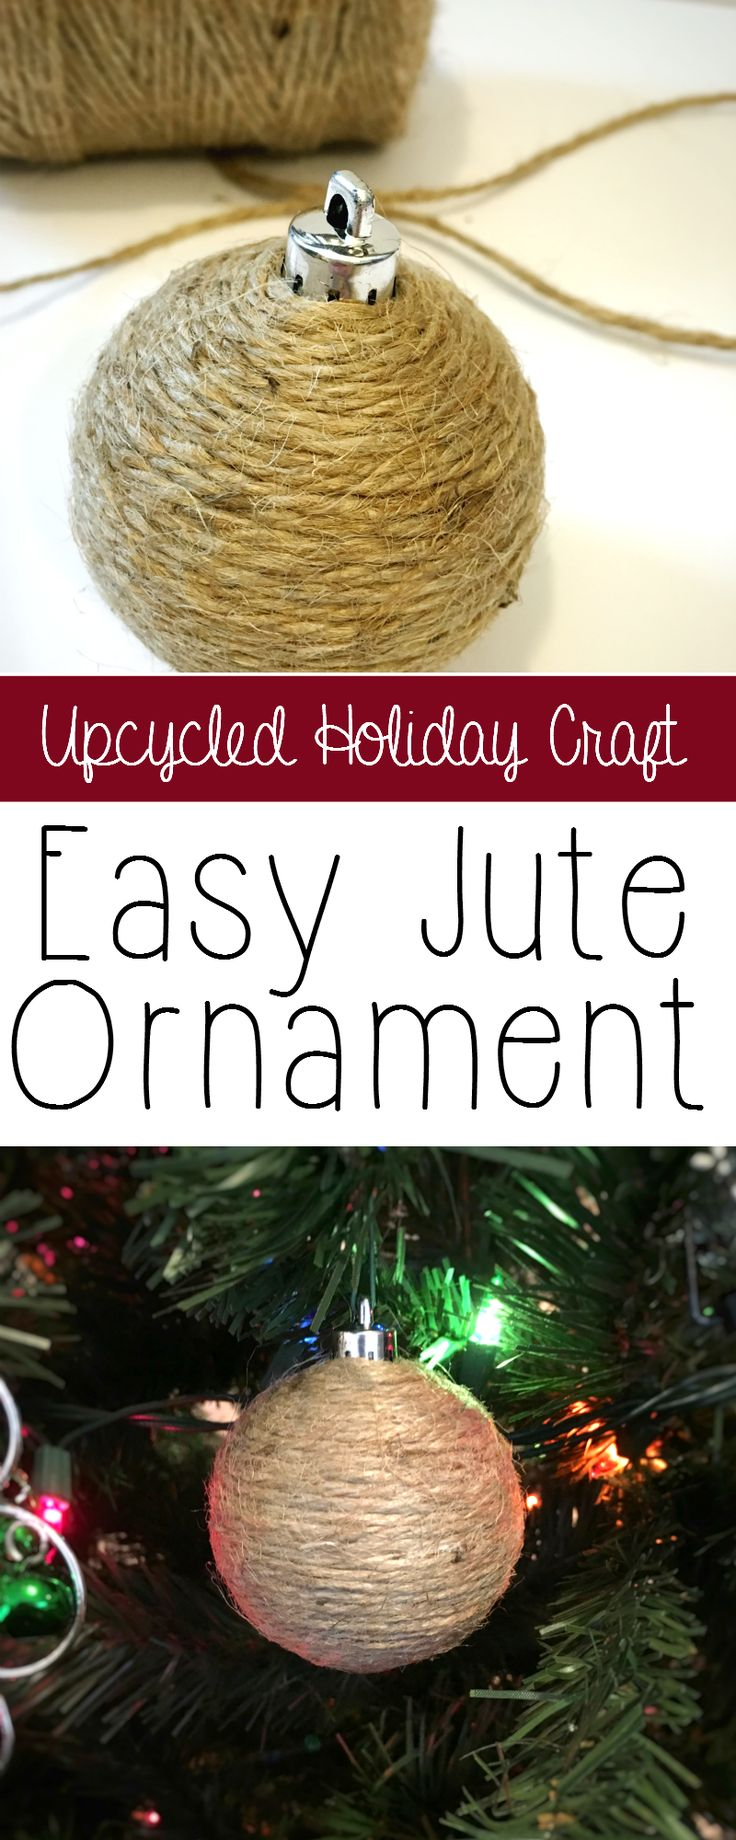 Rustic christmas decorations diy - Upcycled Jute Ornaments Easy And Inexpensive Craft Diy Ornamentsrustic Homemade Christmas